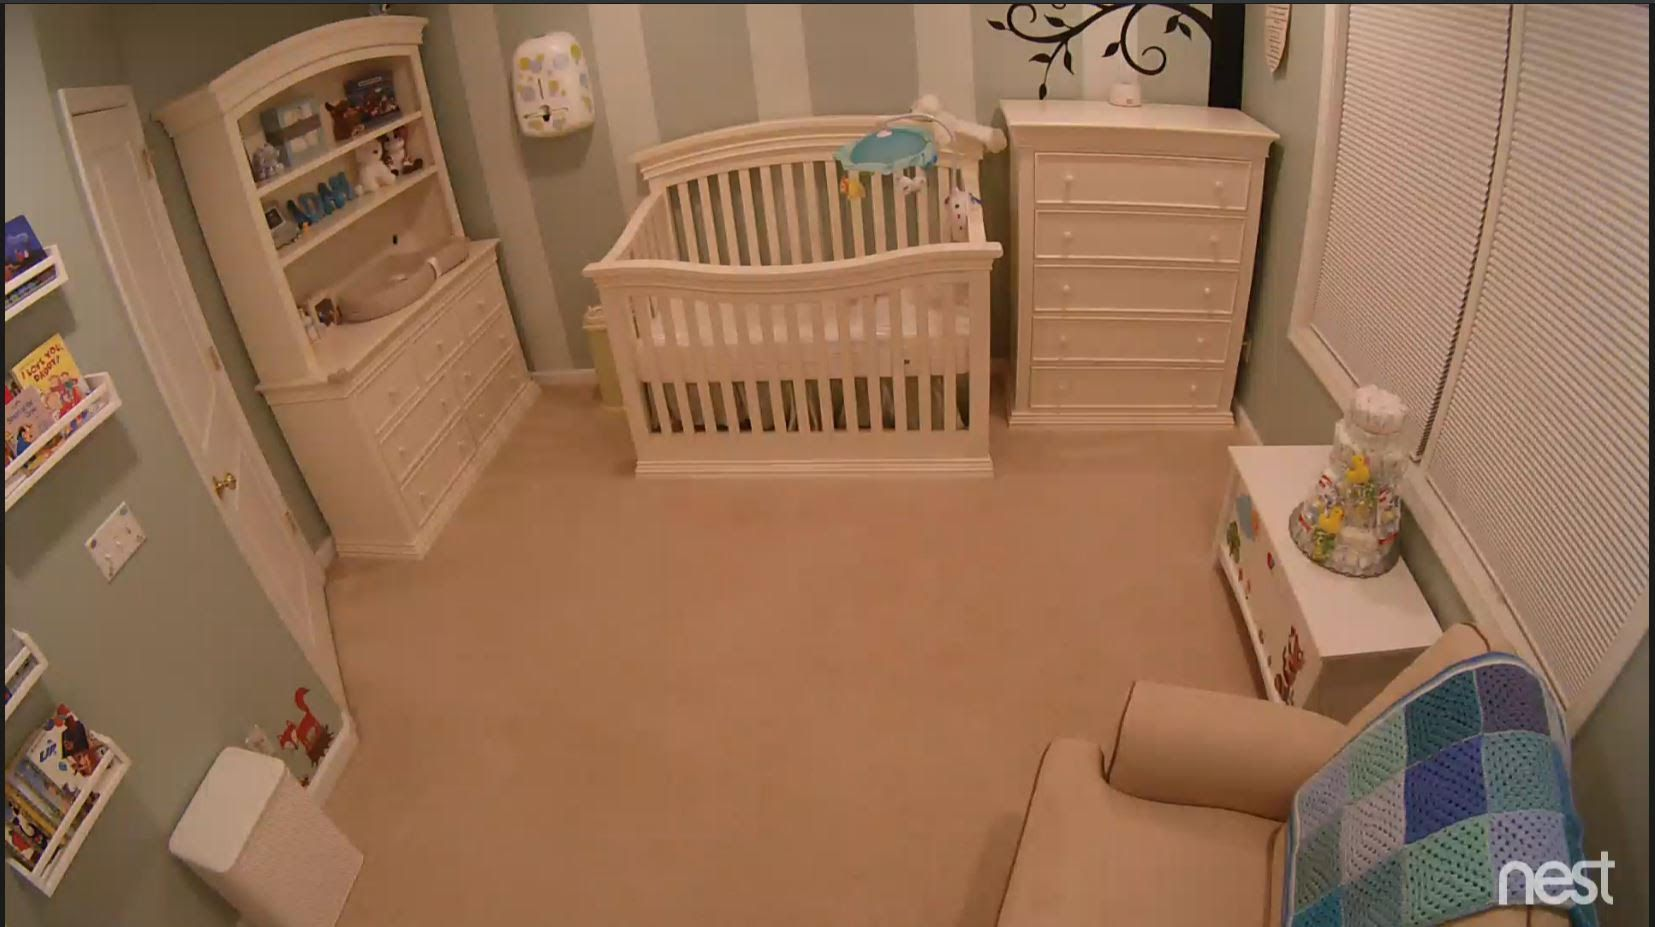 View from our nest cam. baby nursery  Baby nursery, Nursery, Home